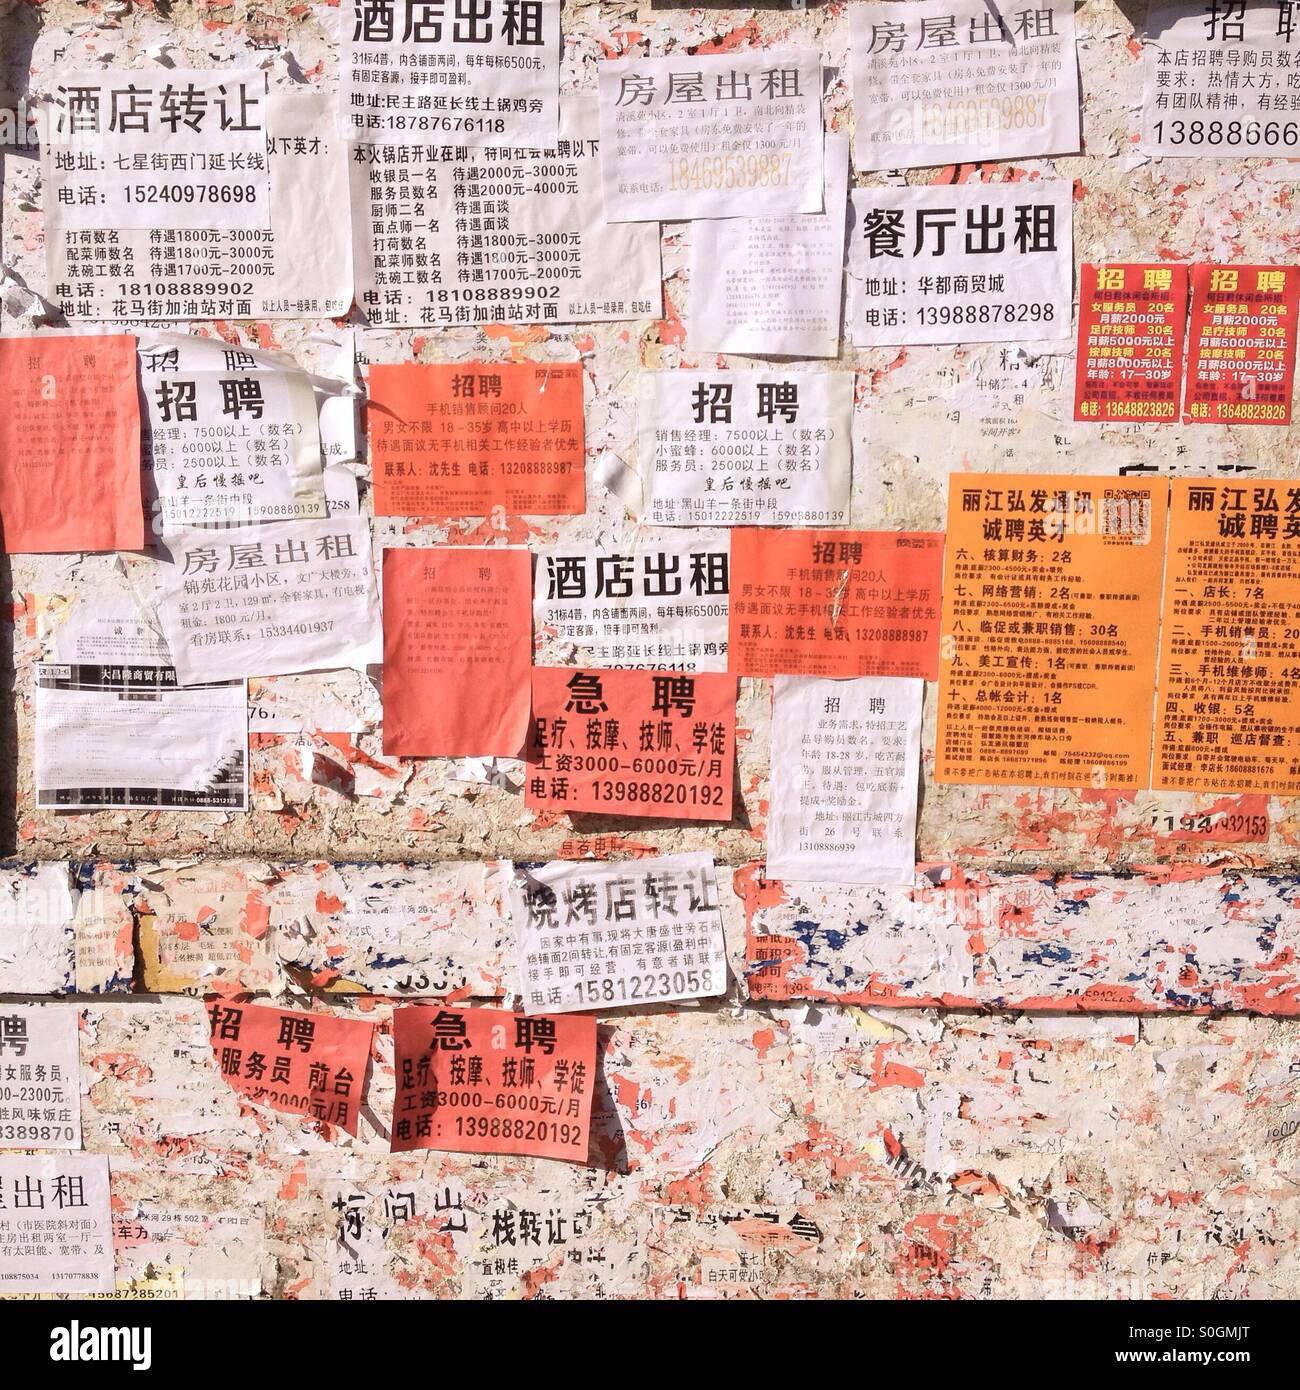 Bill Posting On A Street In Lijiang China - Stock Image